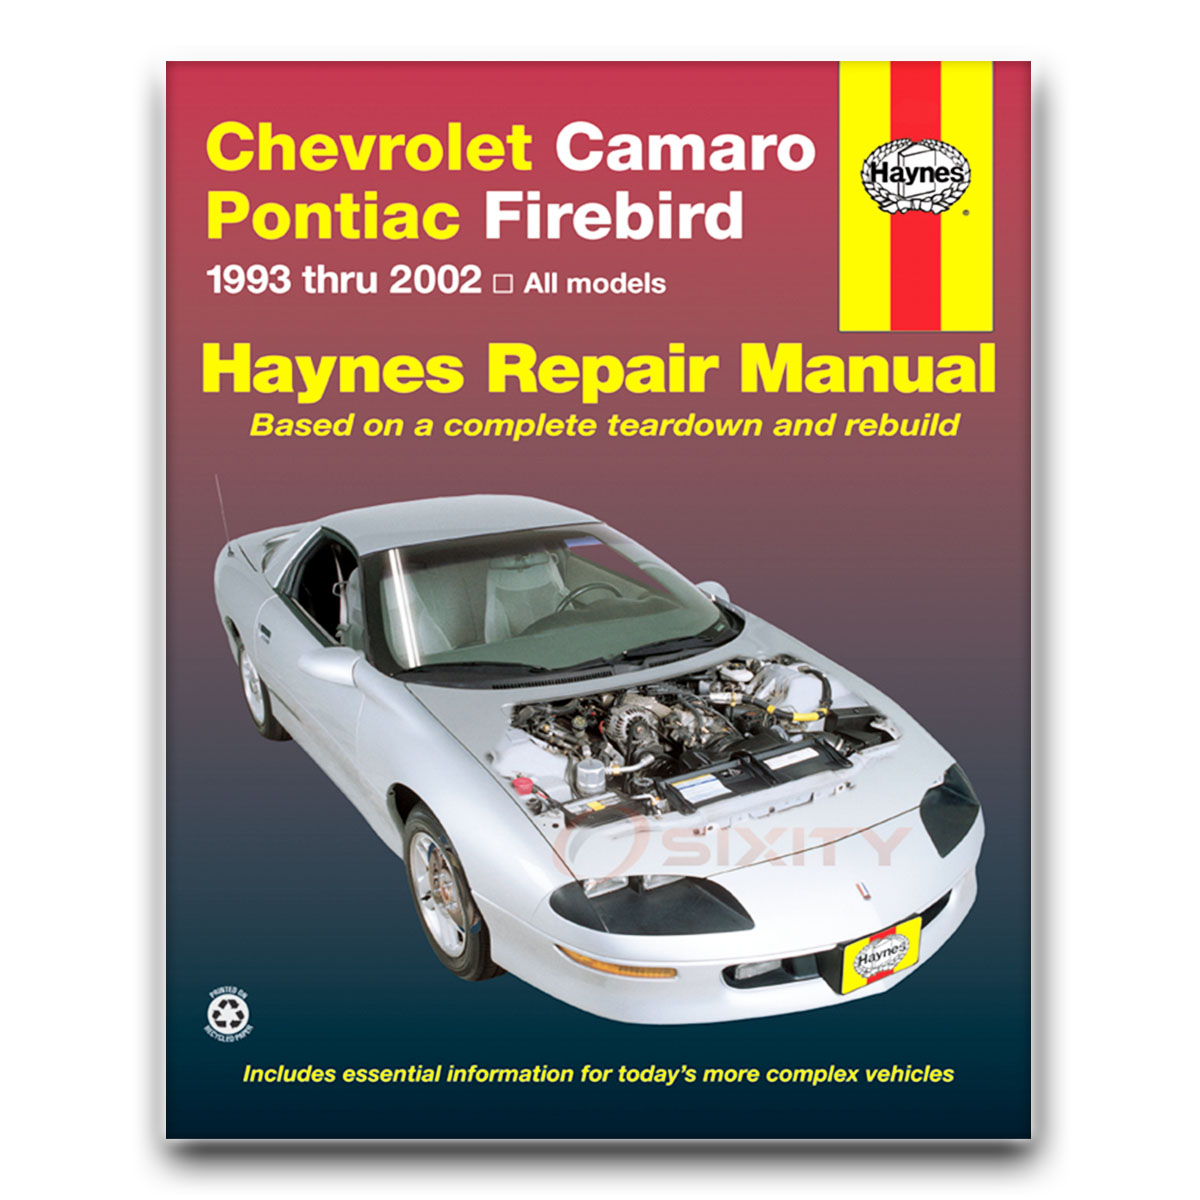 haynes chevrolet camaro pontiac firebird 93 02 repair manual 24017 rh ebay com pontiac firebird manual for sale pontiac firebird manual v6